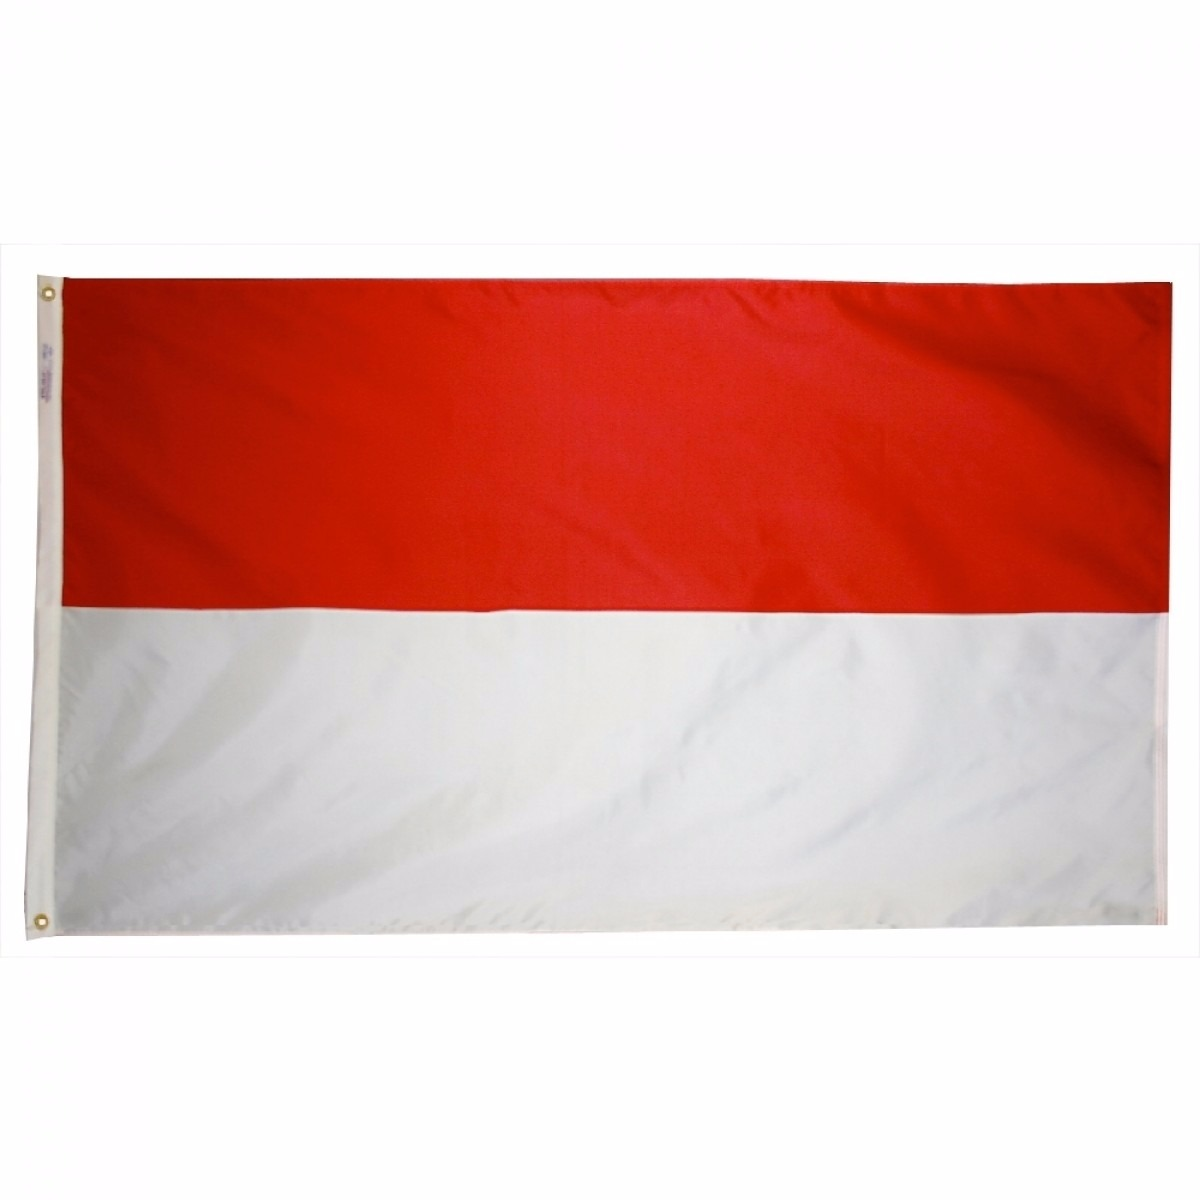 100/% Polyester National Country Asia Indonesia Flag 5 x 3 FT